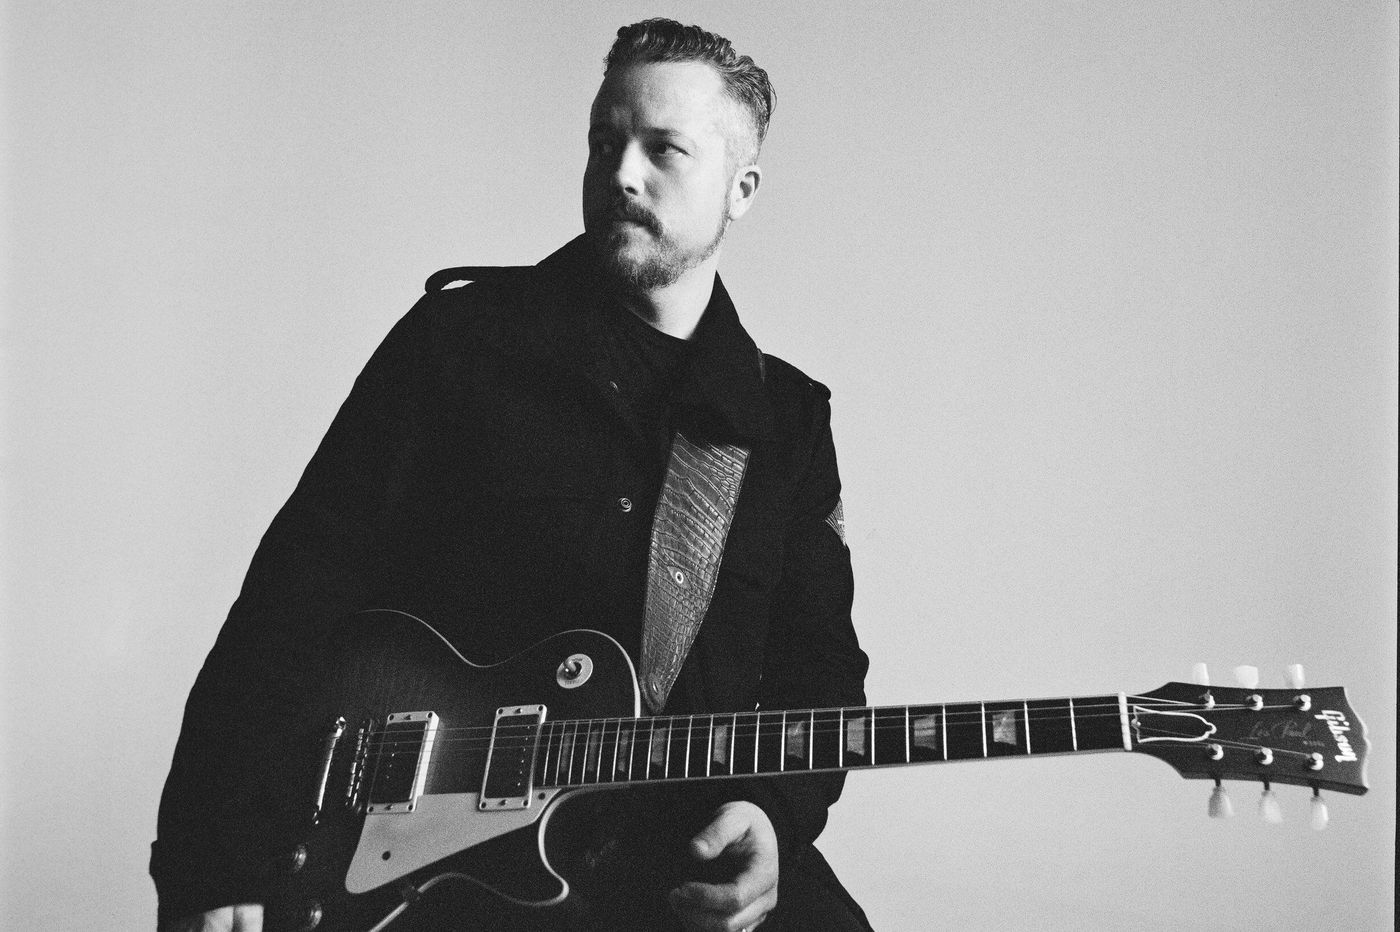 Jason Isbell's latest album feels lived-in, in all the right ways. Hayley Williams really is a solo act now.